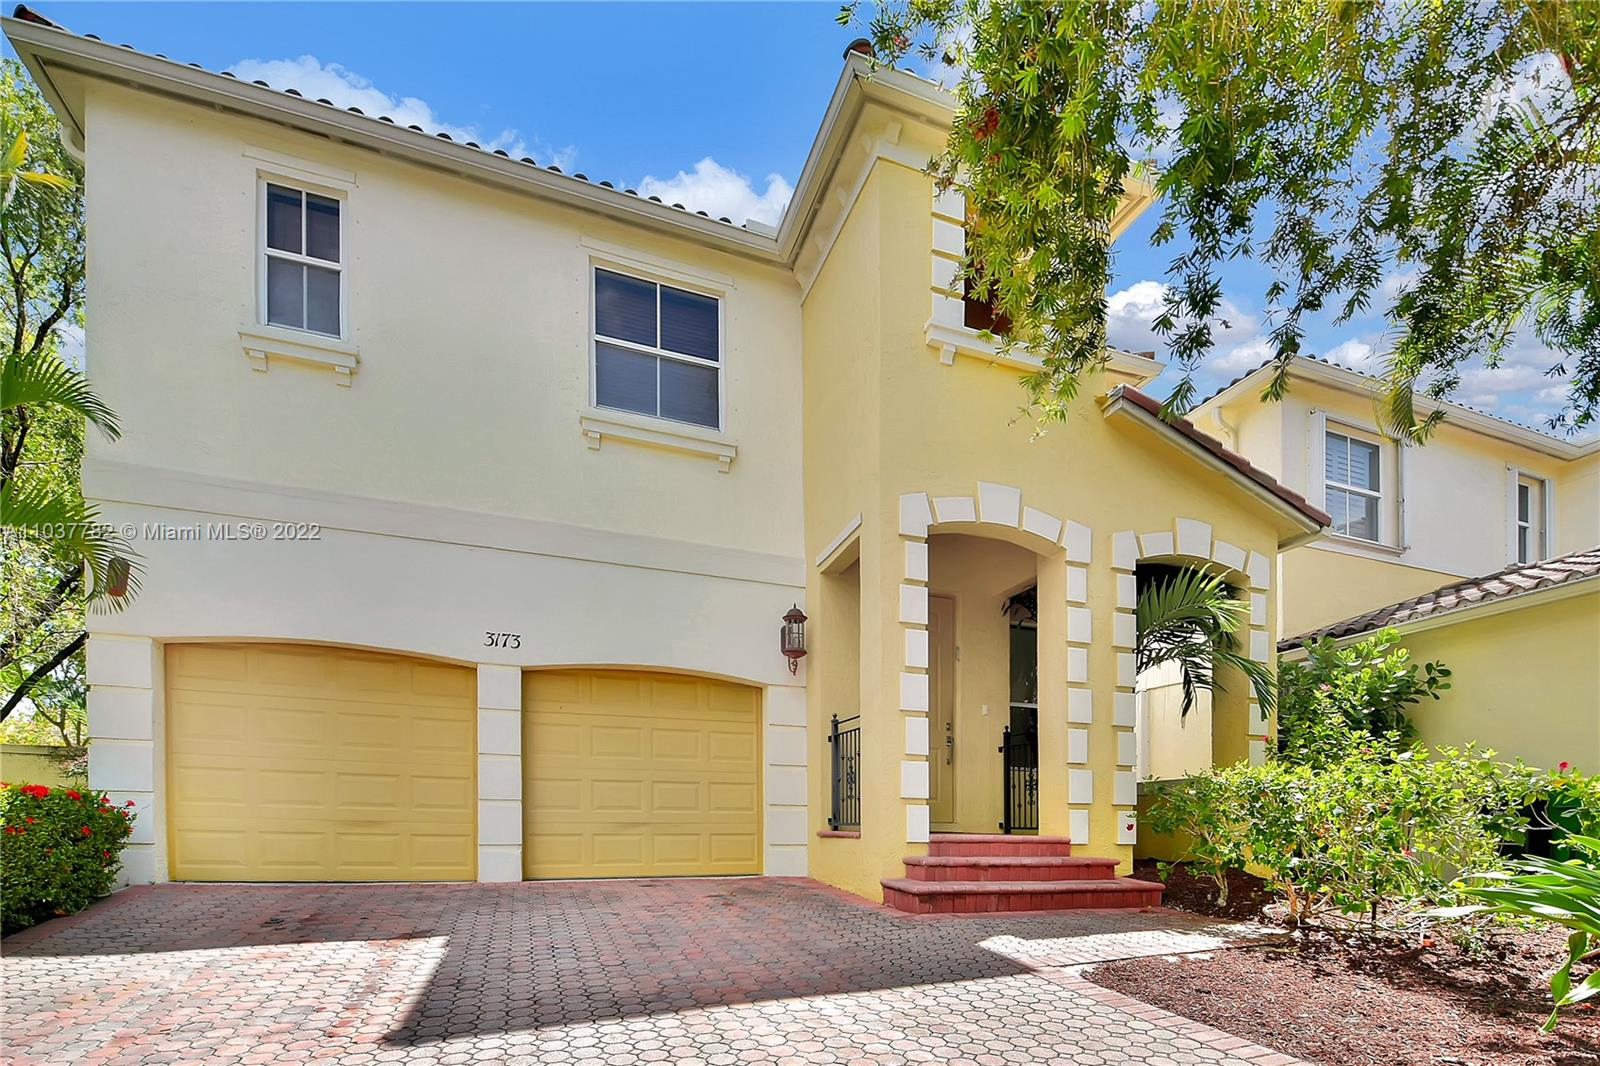 """Two-Story SFH in beautiful Aventura Lakes Gated Community. The PERFECT FOR A BIG FAMILY. House sits on one of the largest lots (5,992 SF) with """"L"""" shape back yard with pool, great space to entertain people. Extended driveway for 4 cars and 2 in the garage. House features a built-in office on the first floor for remote work. Open floor plans, high ceilings, marble on the 1st floor, and laminated wood on the 2nd floor. Open kitchen with stainless steel appliances. Less than 8 min walk to the new Aventura Don Soffer Highschool. """"Aventura The City of Excellence"""" highlights this beautiful private gated family-oriented community of single-family homes with a beautiful and tropical clubhouse for everyone to enjoy. Aventura Lakes is close to everything. House needs a little TLC."""